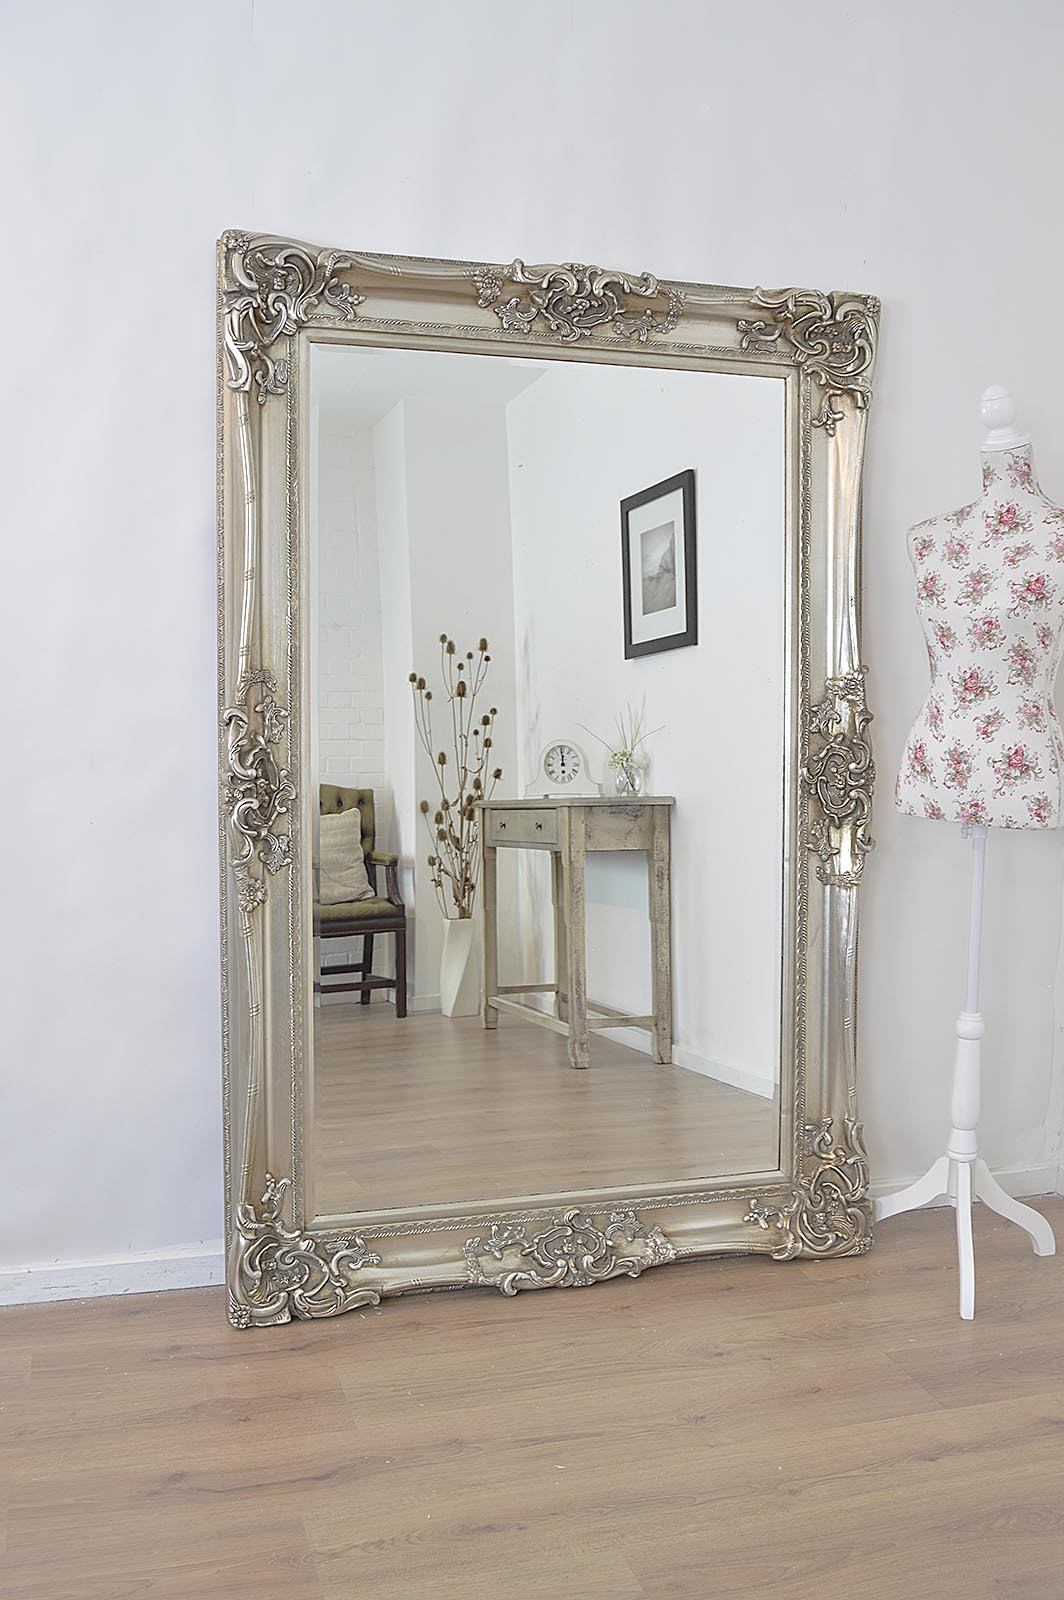 Fine Decoration Huge Wall Mirror Cozy Design Silver Ornate Huge Pertaining To Silver Ornate Framed Mirror (Image 5 of 15)